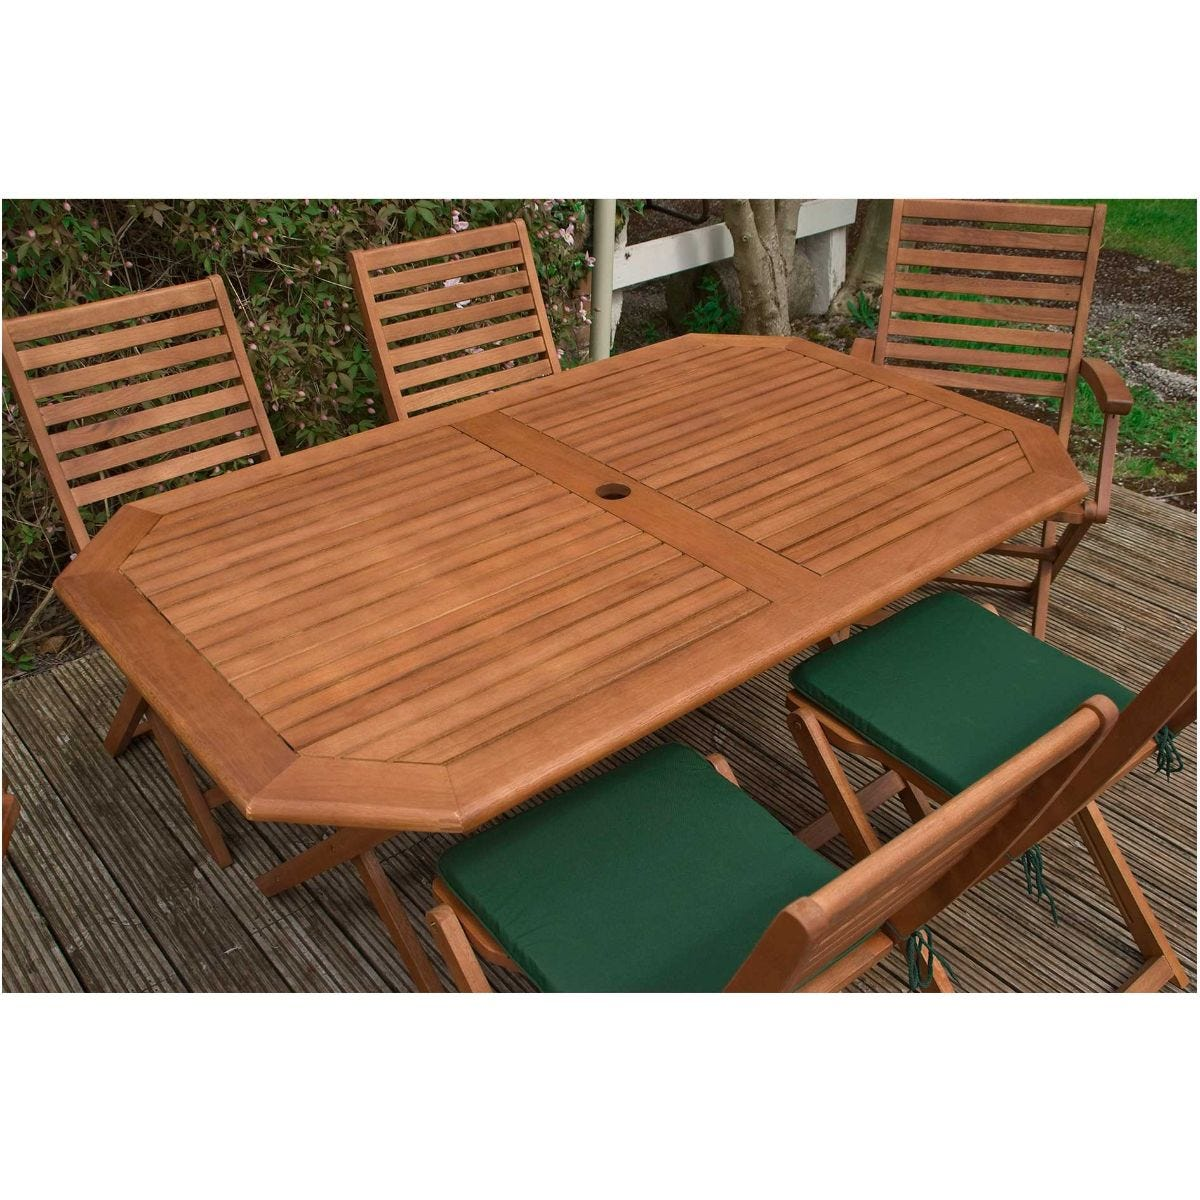 Rowlinson Plumley Garden Table and 6 Chairs Set